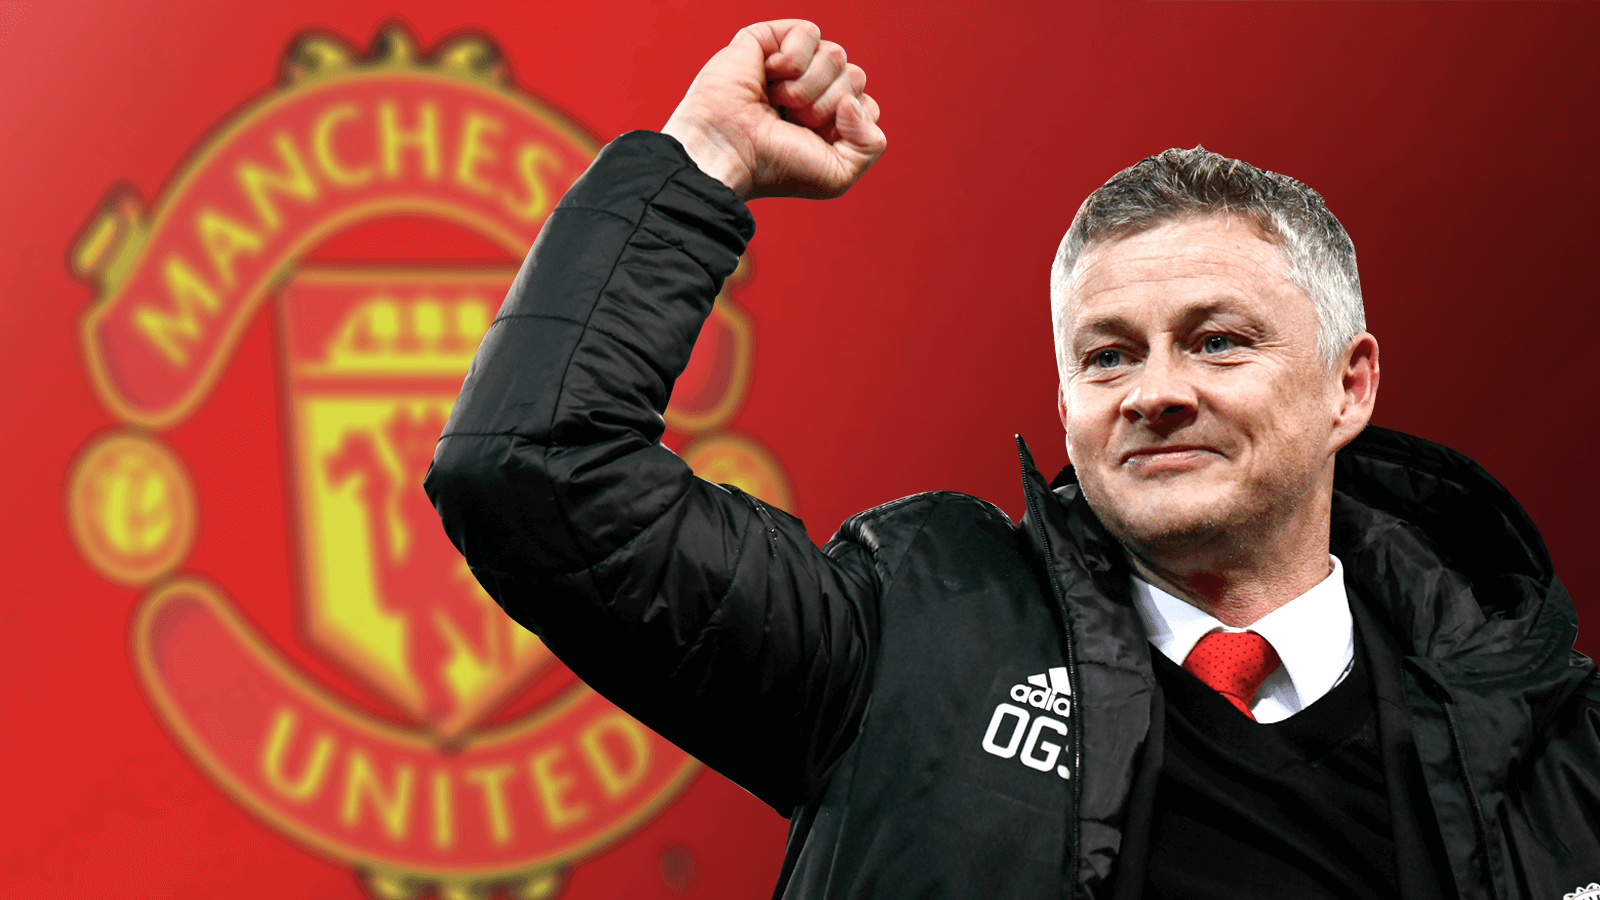 Ole Gunnar Solskjaer Man Utd Manager's Desktop Wallpapers